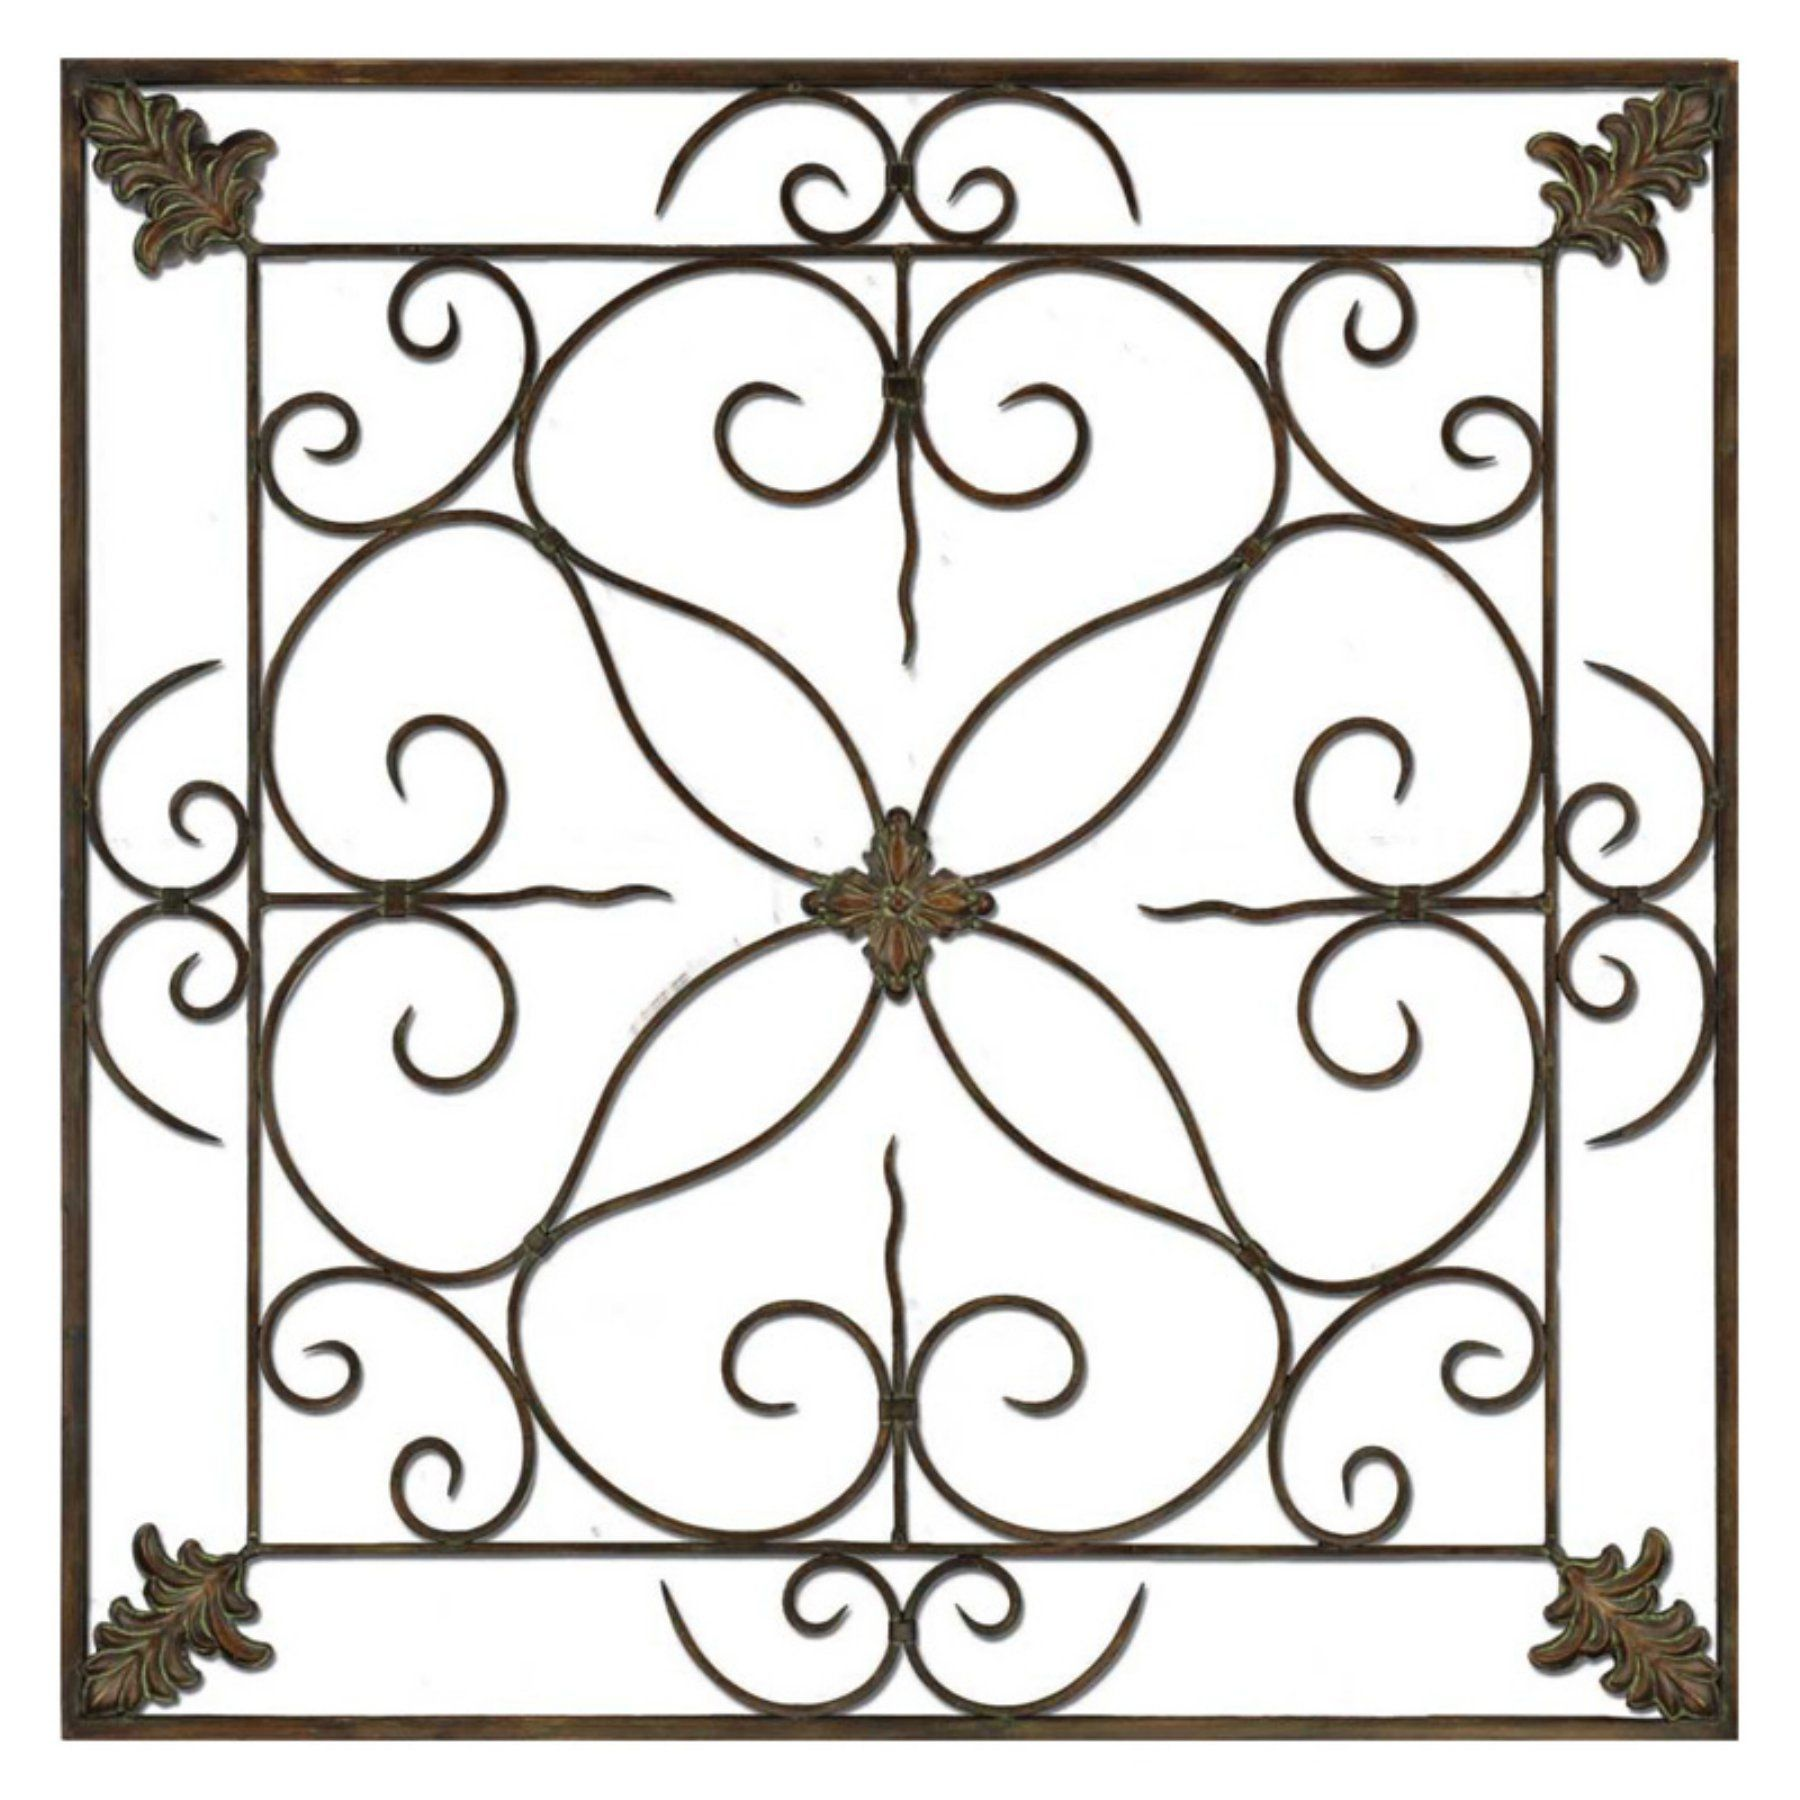 Paragon decor aged floral panel wall sculpture panel walls